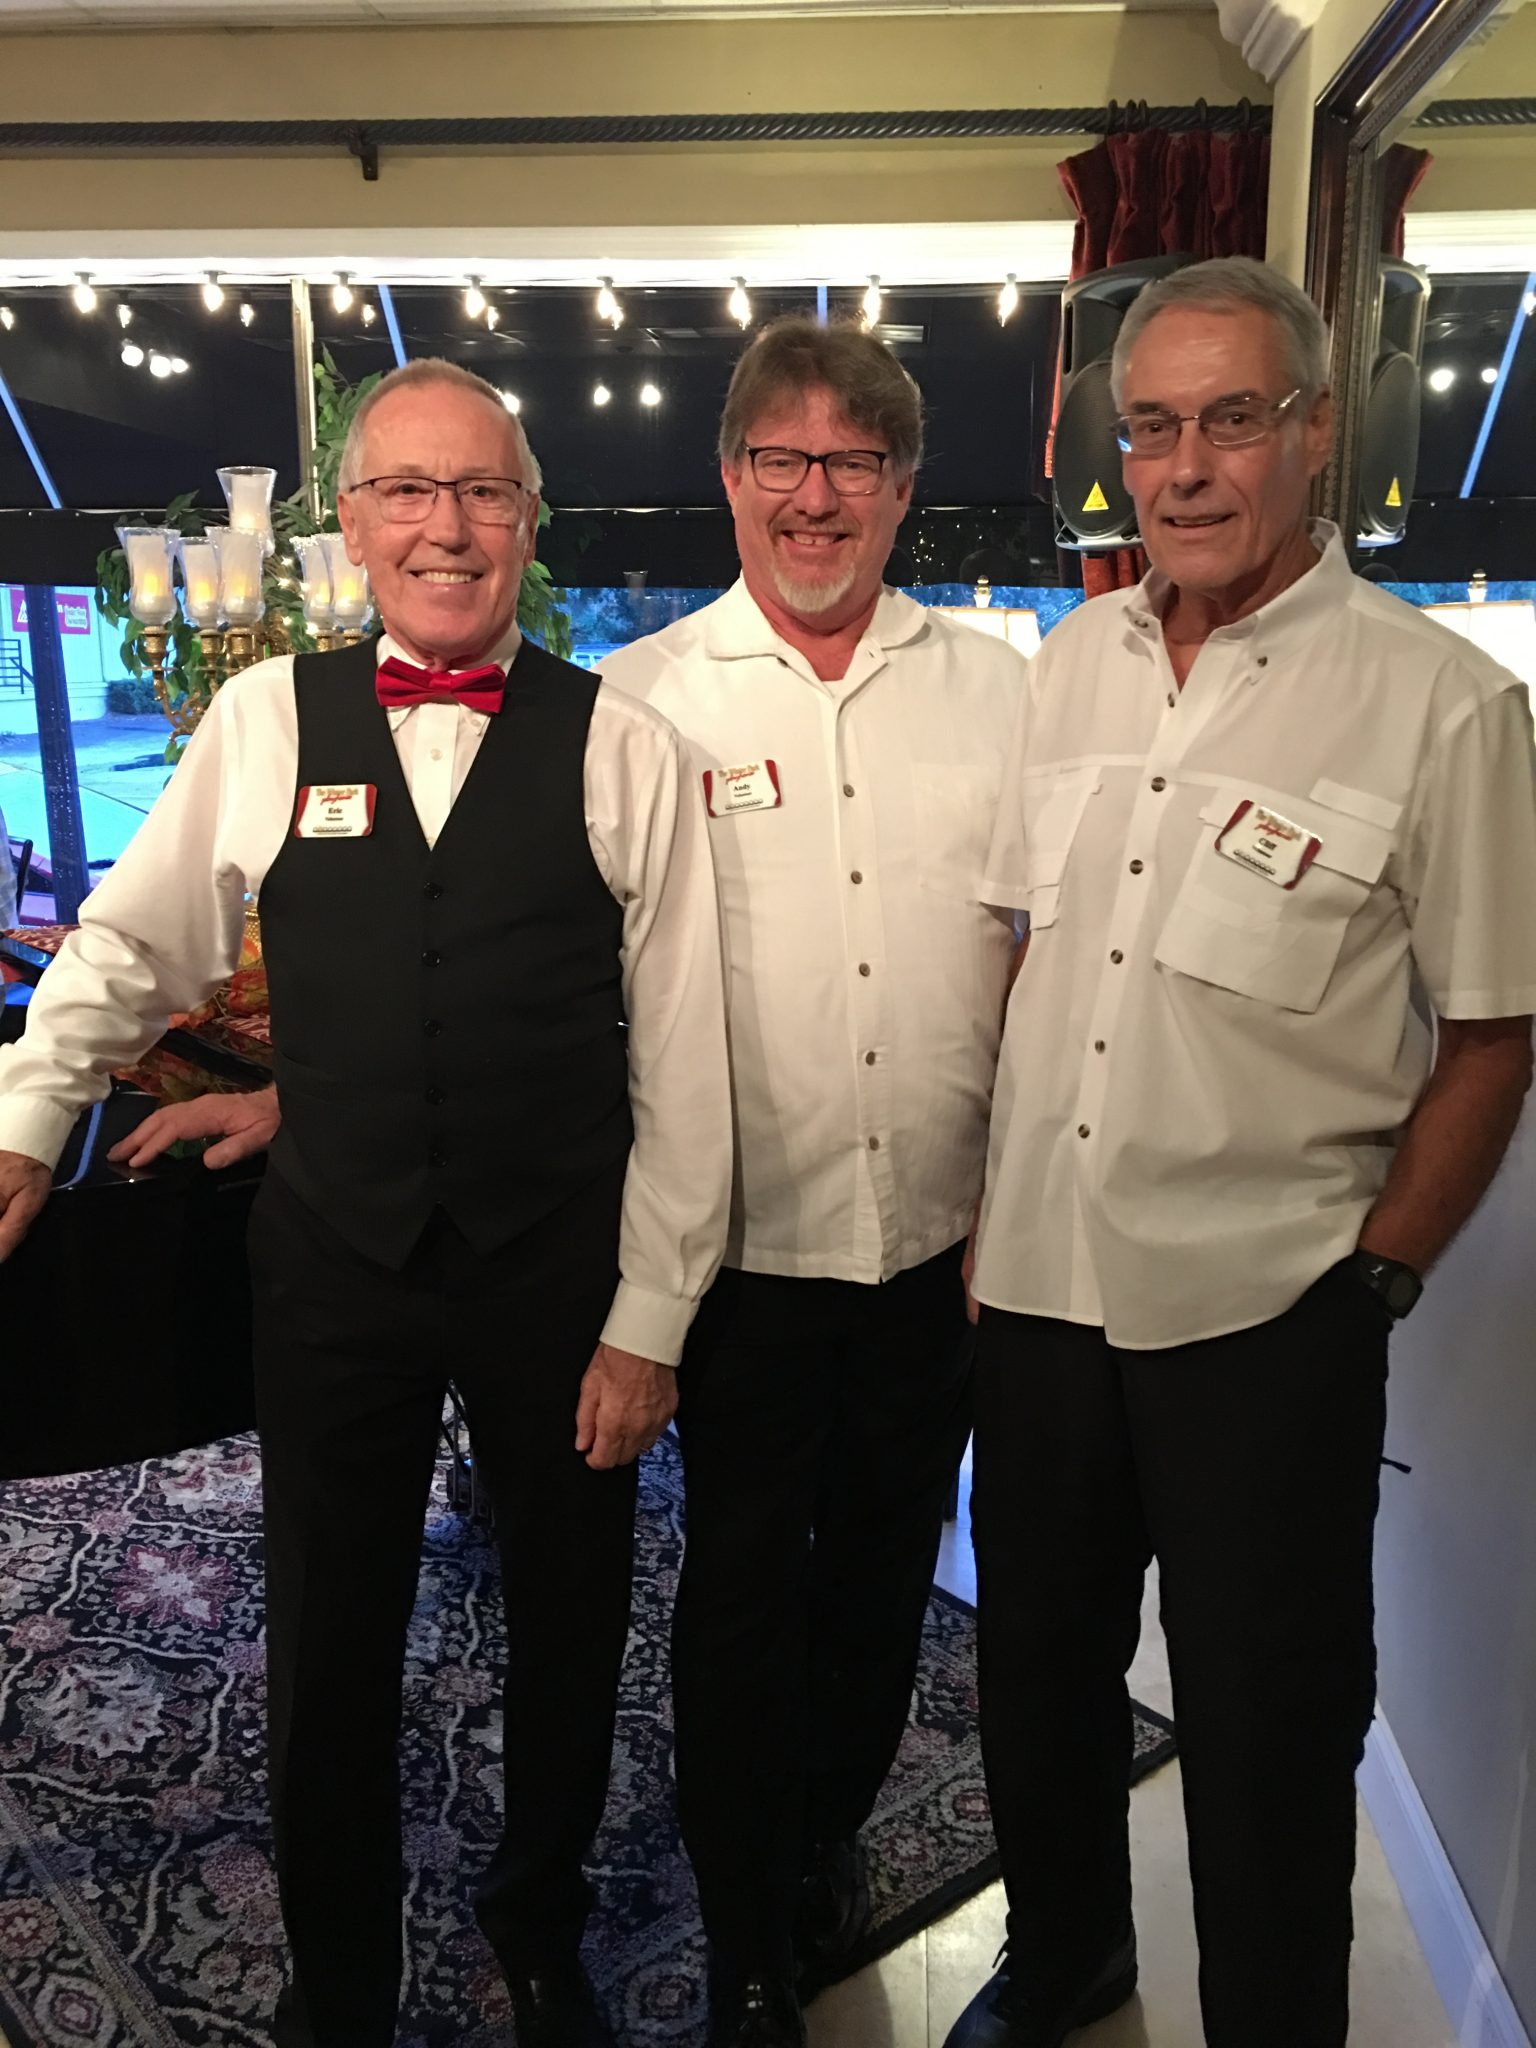 Winter Park Playhouse usher friends (lft to rt) Eric Steckel, Andy Peck and Cliff Crook